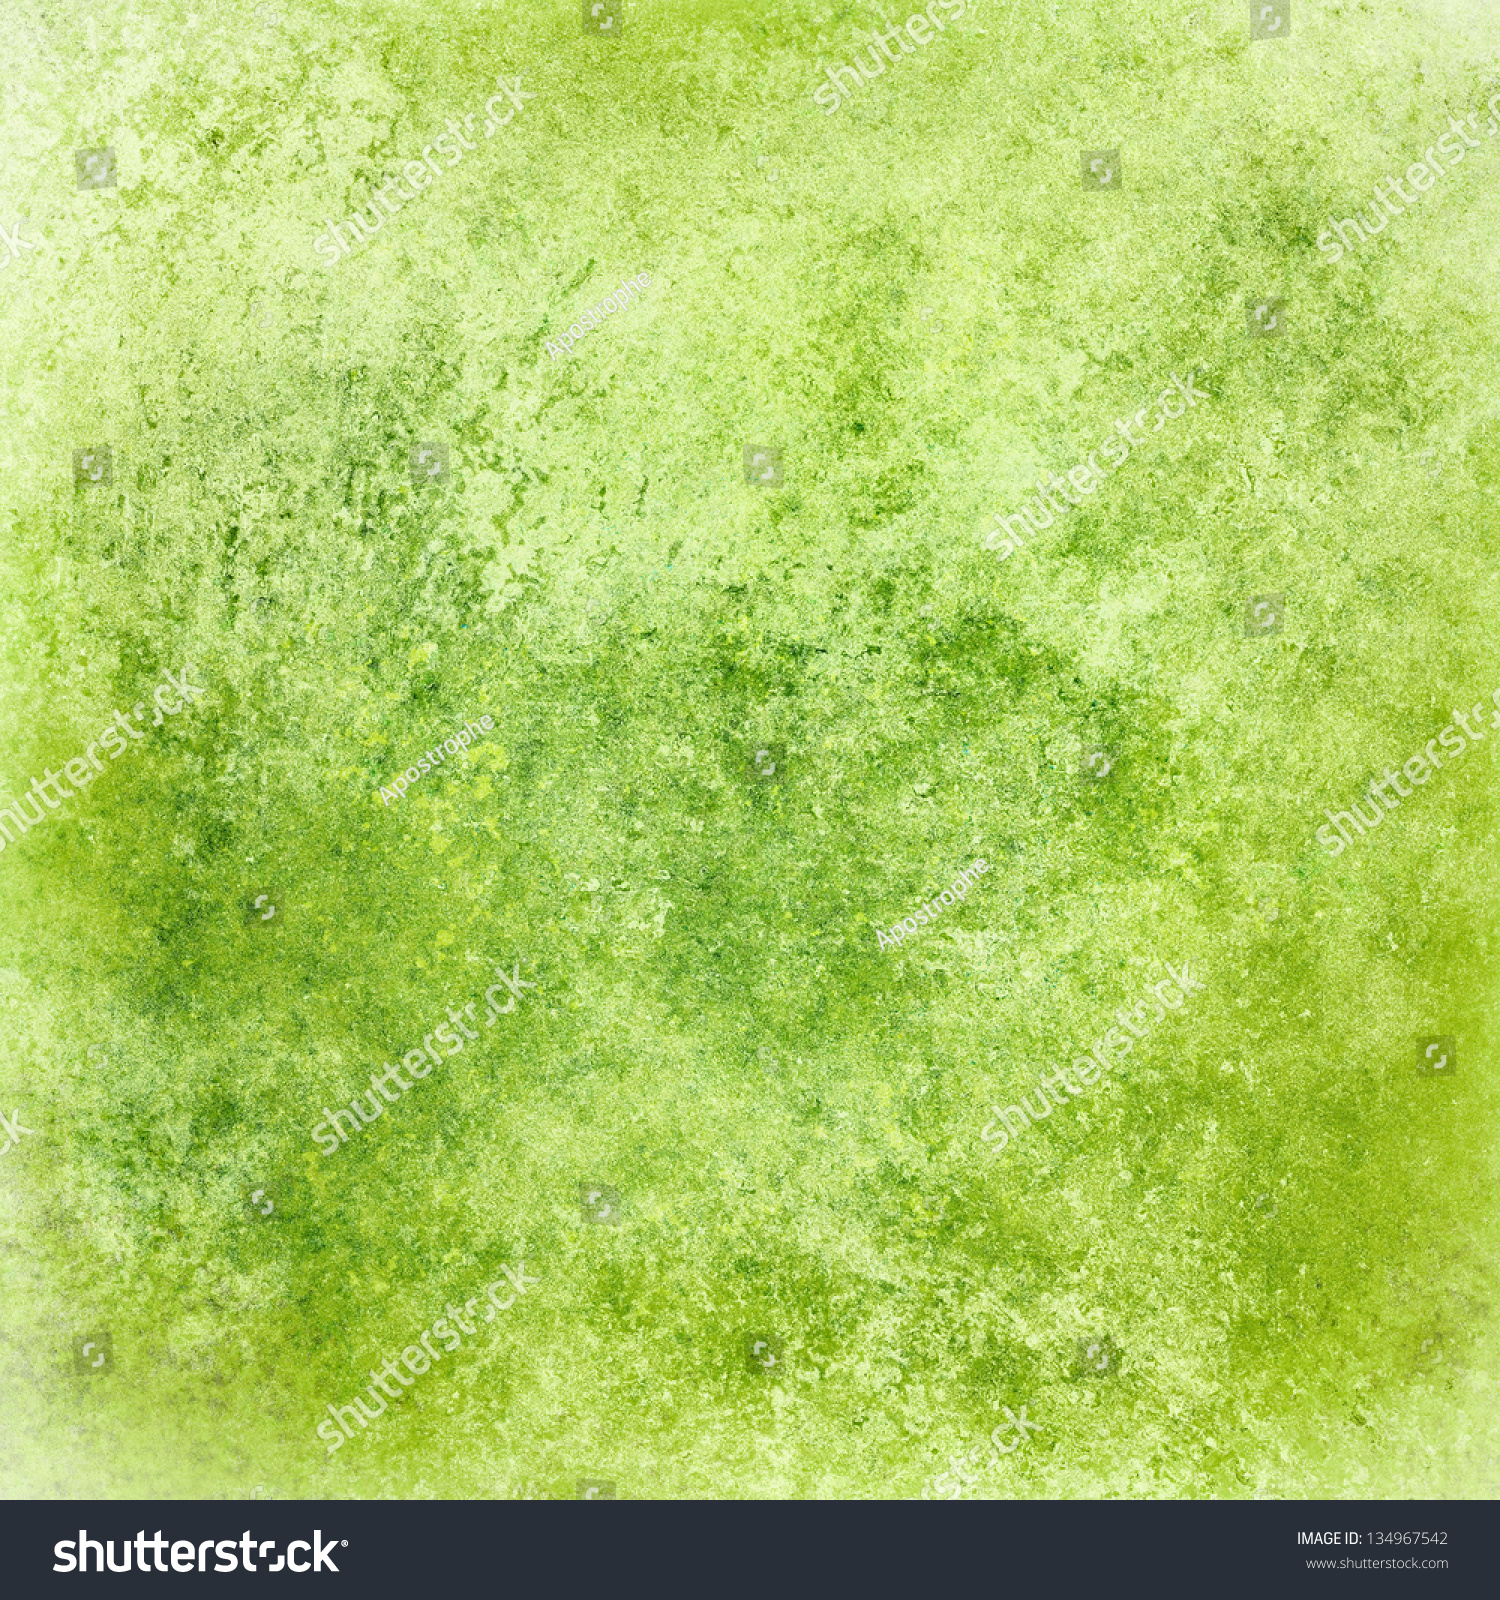 Web colors lime - Abstract Green Background Lime Color Vintage Grunge Background Texture Design Elegant Antique Painted Wall Illustration